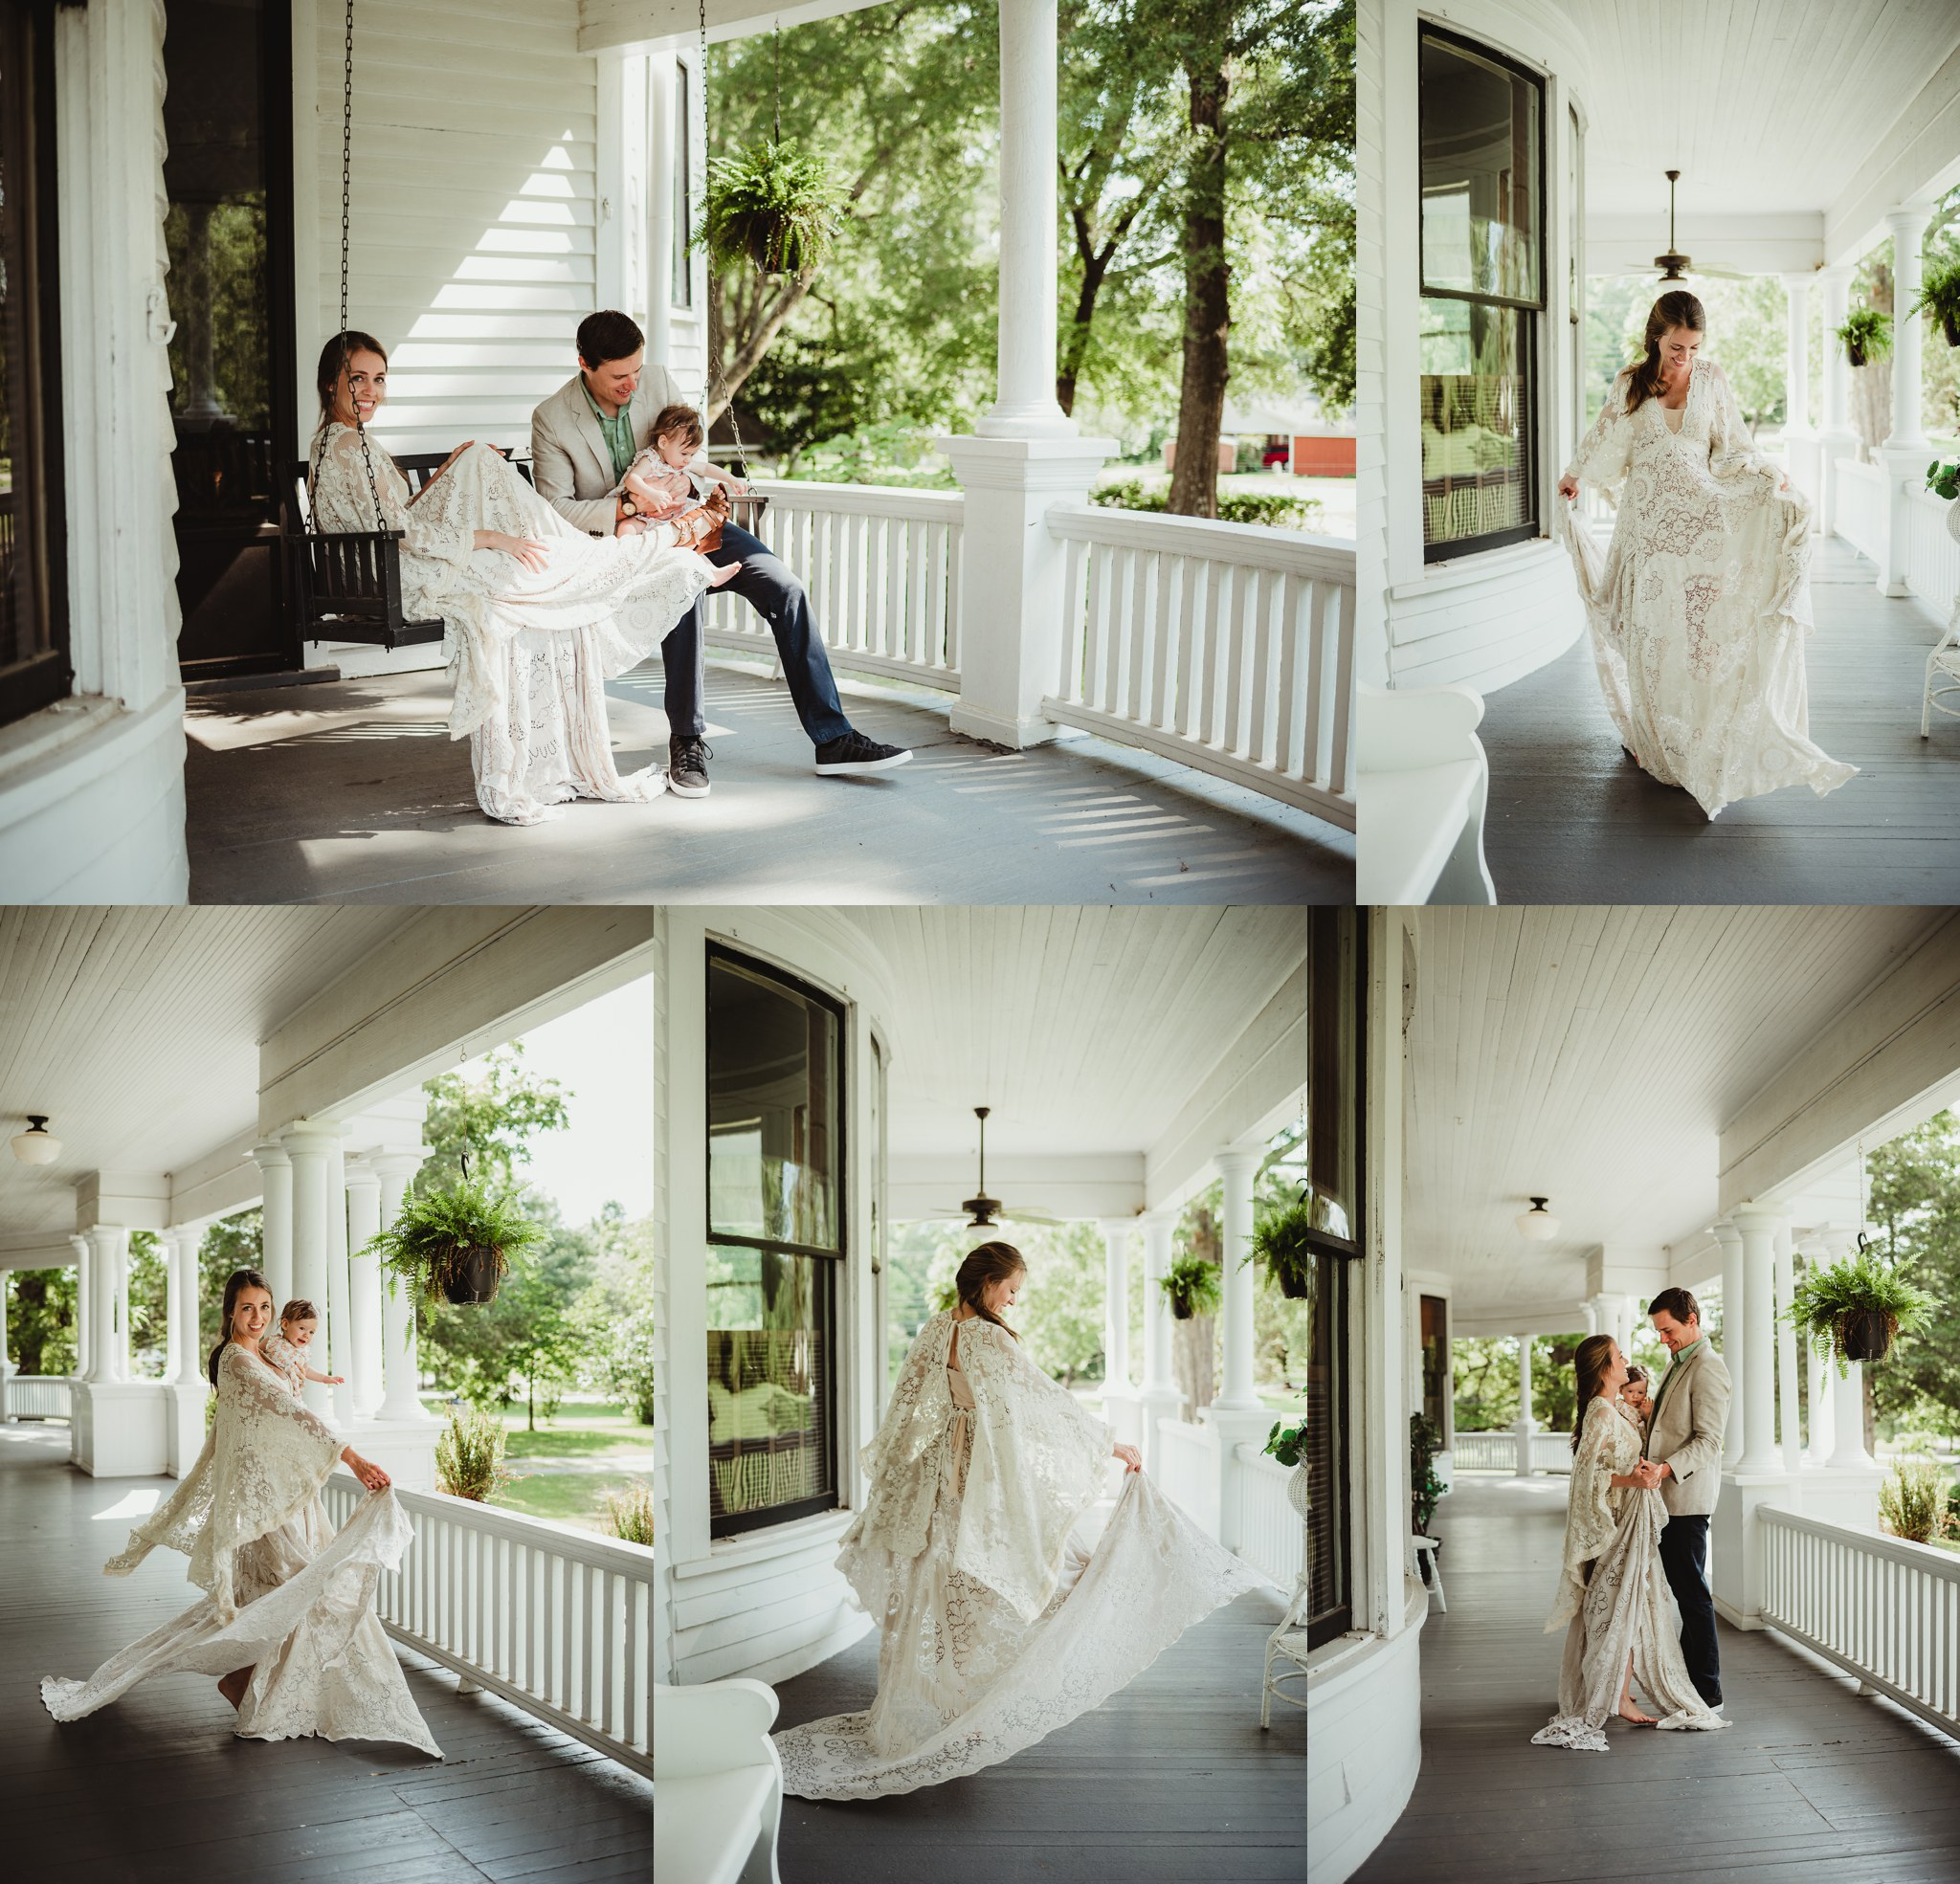 Family and model pictures of a Mama wearing a Reclamation boho vintage lace dress at the Mason Street Manor, available for rent in Rolesville North Carolina by Rose Trail Images.